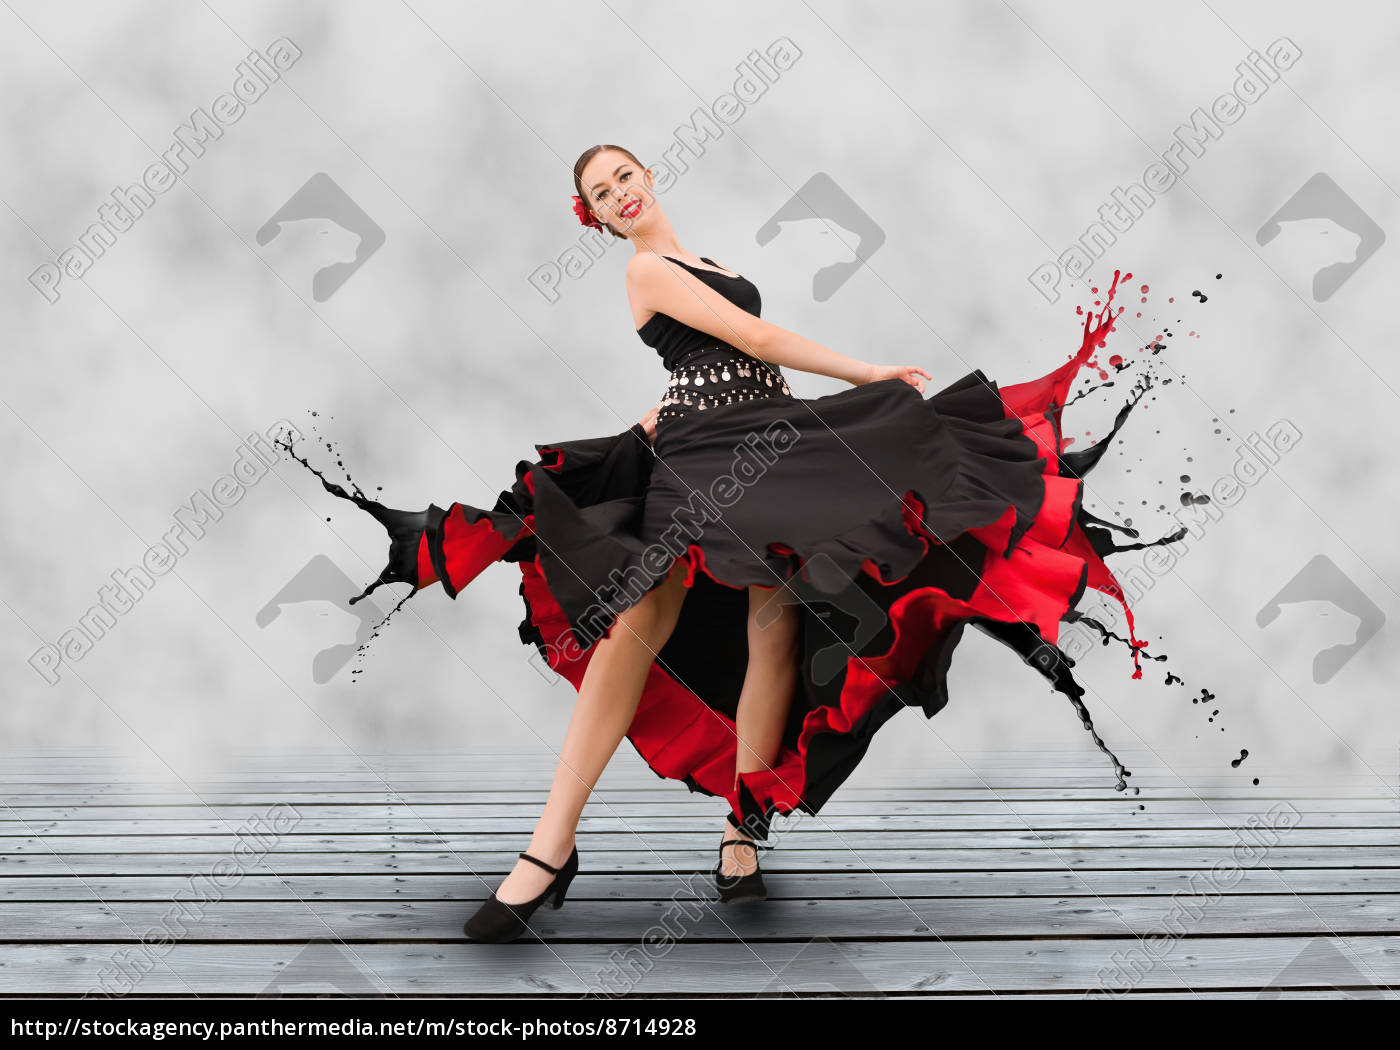 0a8510877 Royalty free photo 8714928 - Flamenco dancer with dress turning to paint  splashes